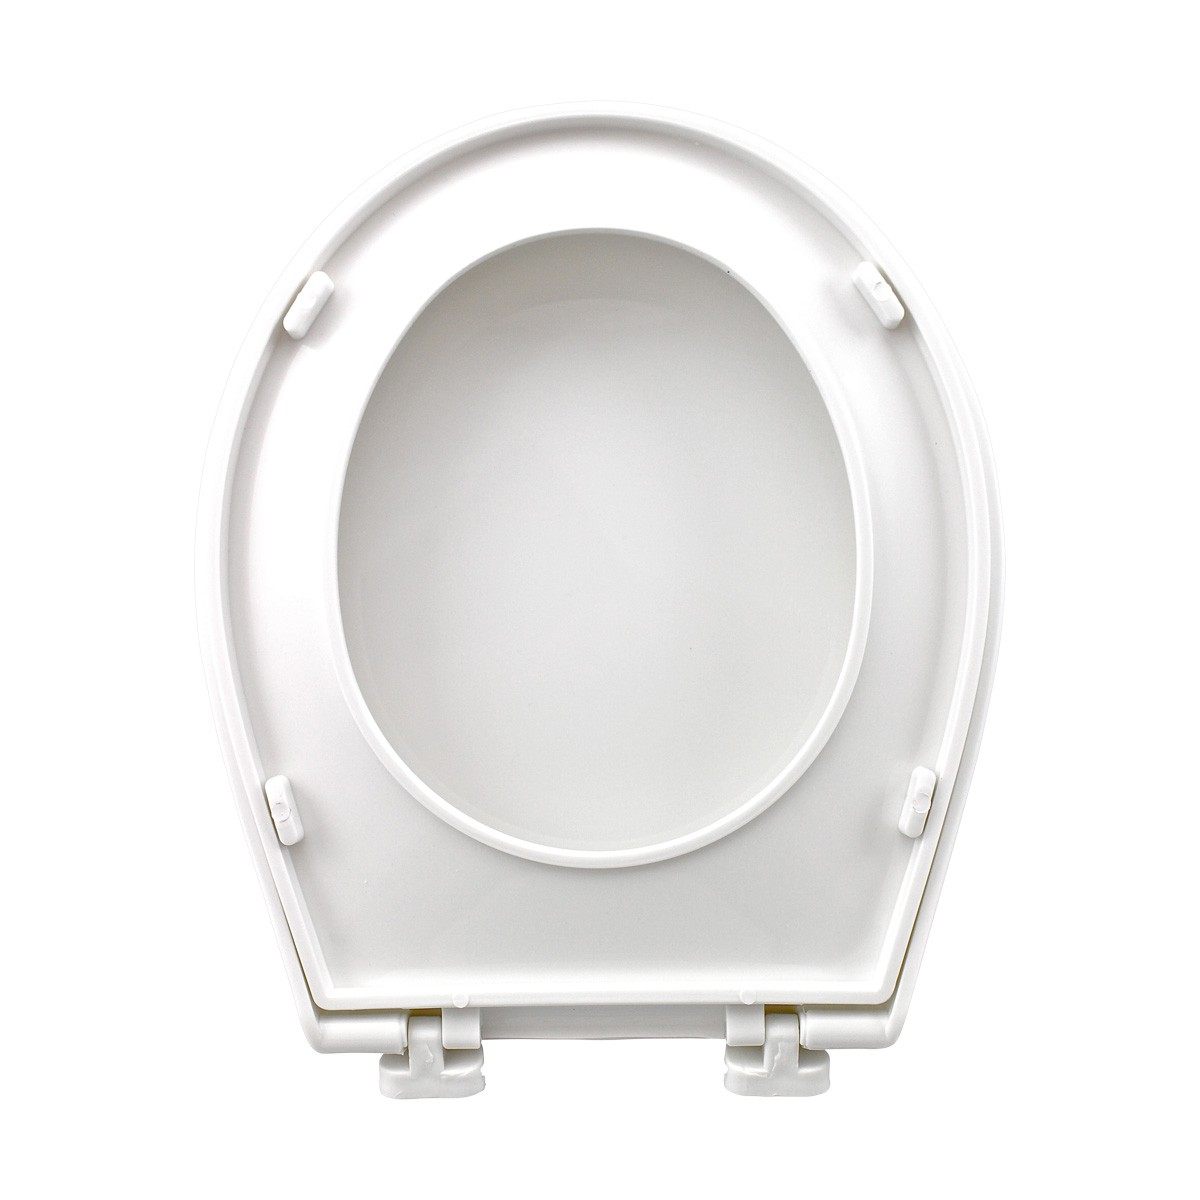 Child Sized Toilet Seat Replacement White Molded Plastic set of 3 novelty decorative replacement loo commode lavatory custom unusual luxury quality standard color design pretty